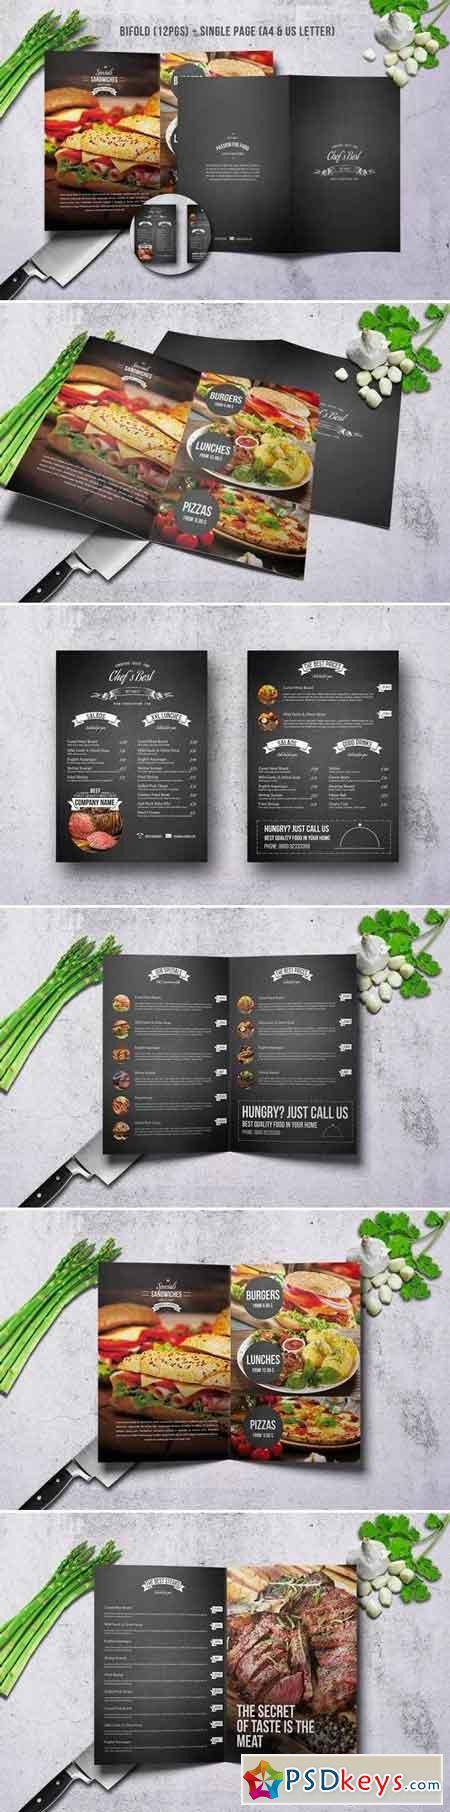 Chef Restaurant Menu Bundle A4 & US Letter